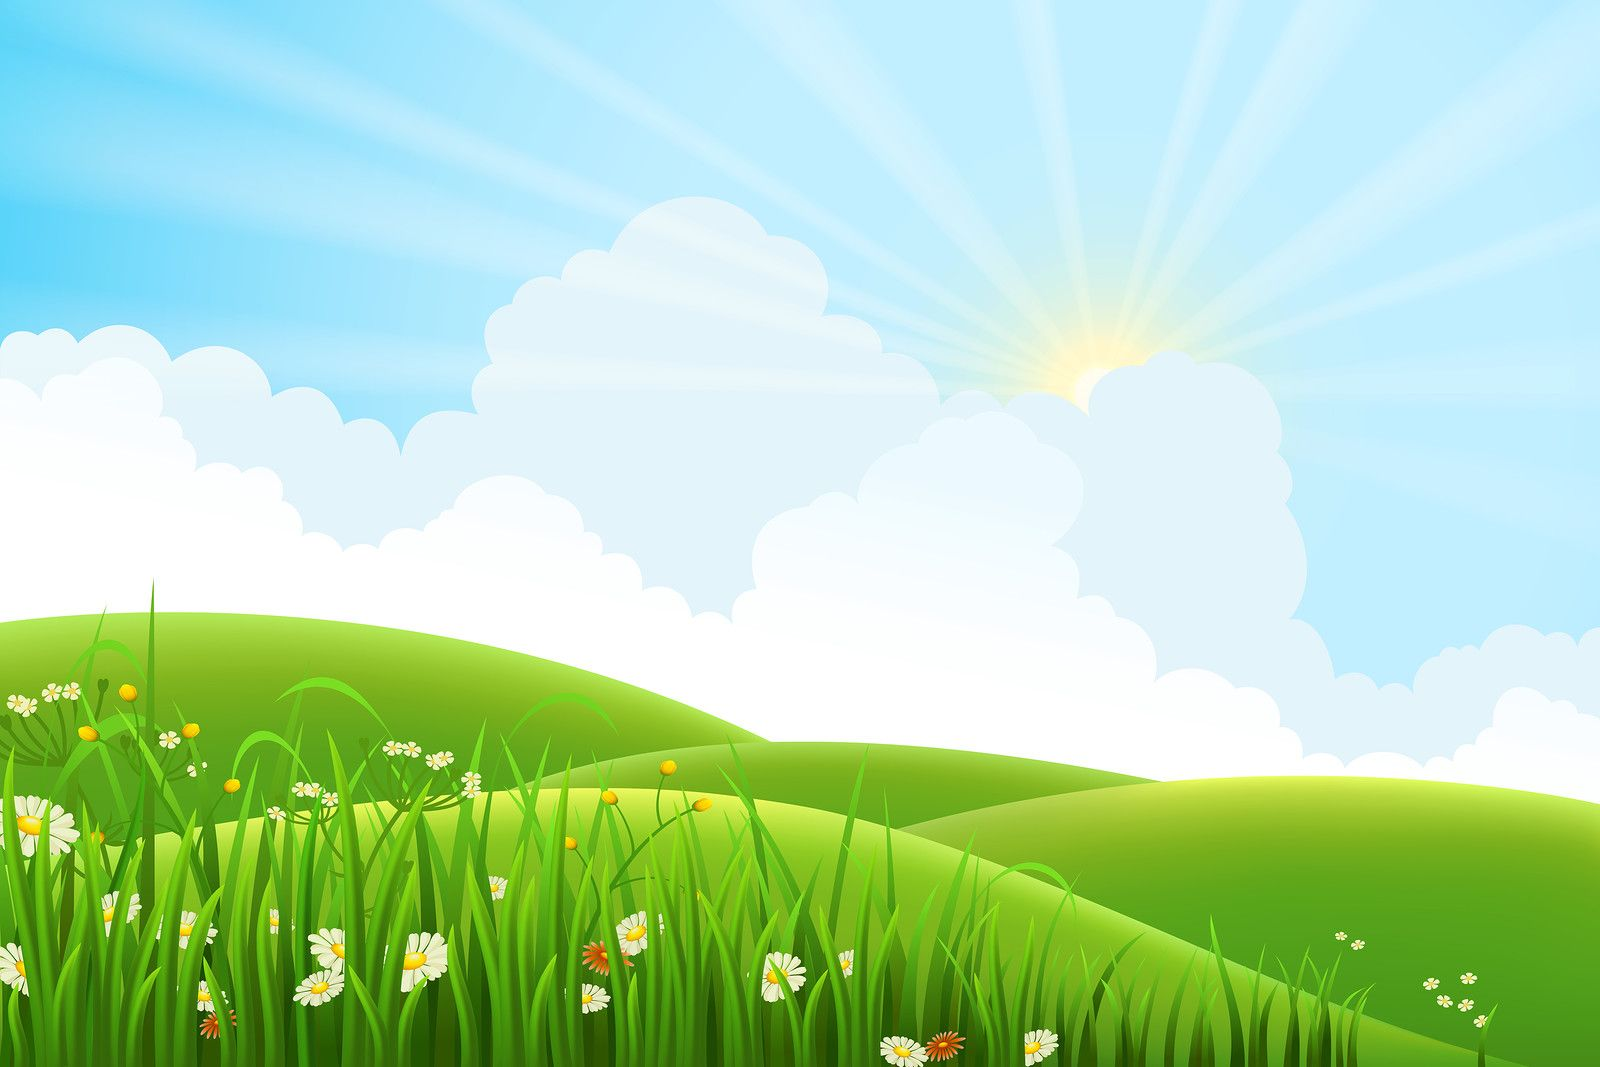 Grassy background clipart clip royalty free stock Pin by Диана Йорданова on долорес албум бухъл | Background ... clip royalty free stock